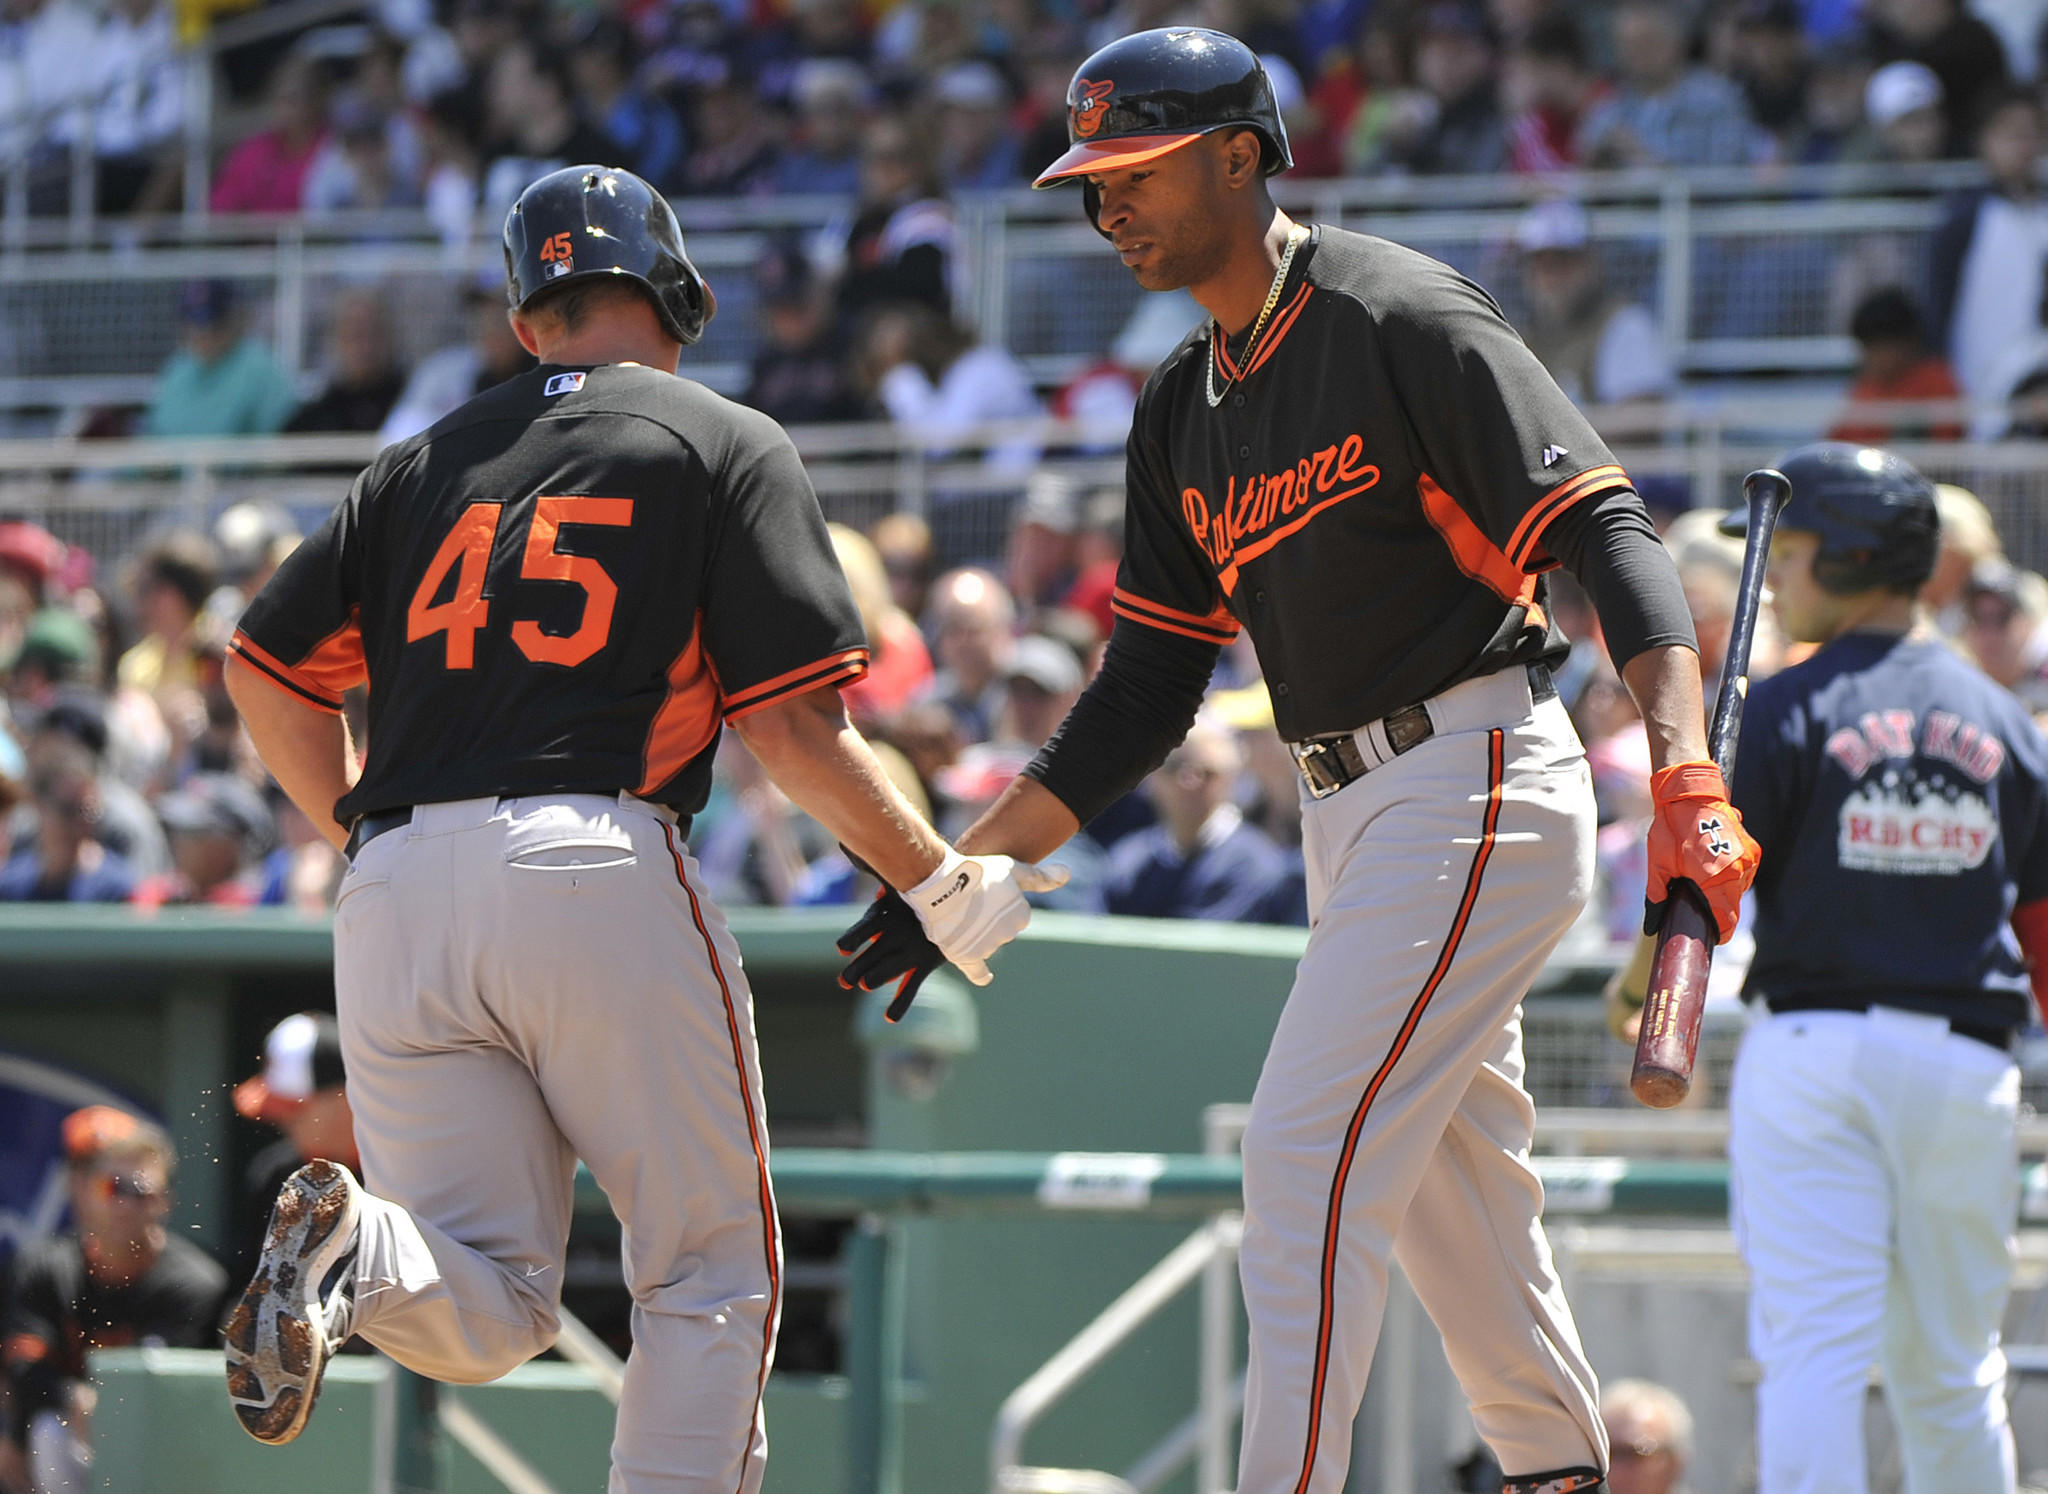 Henry Urrutia (right) greets Orioles catcher Steve Clevenger (left) after hitting a solo home run against the Boston Red Sox at JetBlue Park in Spring Training.